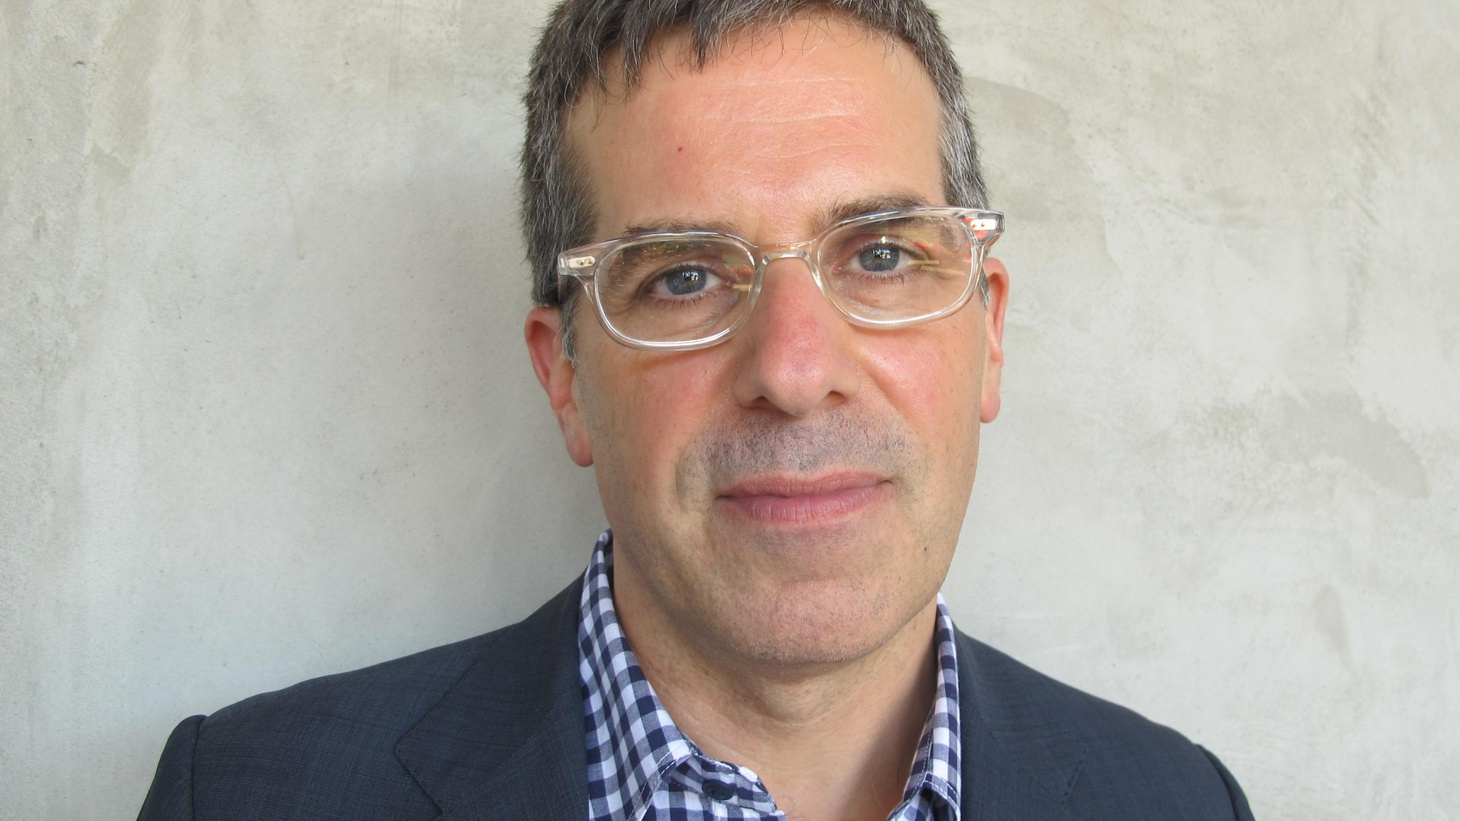 Jonathan Lethem's latest chronicles a lost generation of Jewish socialists who lived in Queens in the mid-twentieth century.